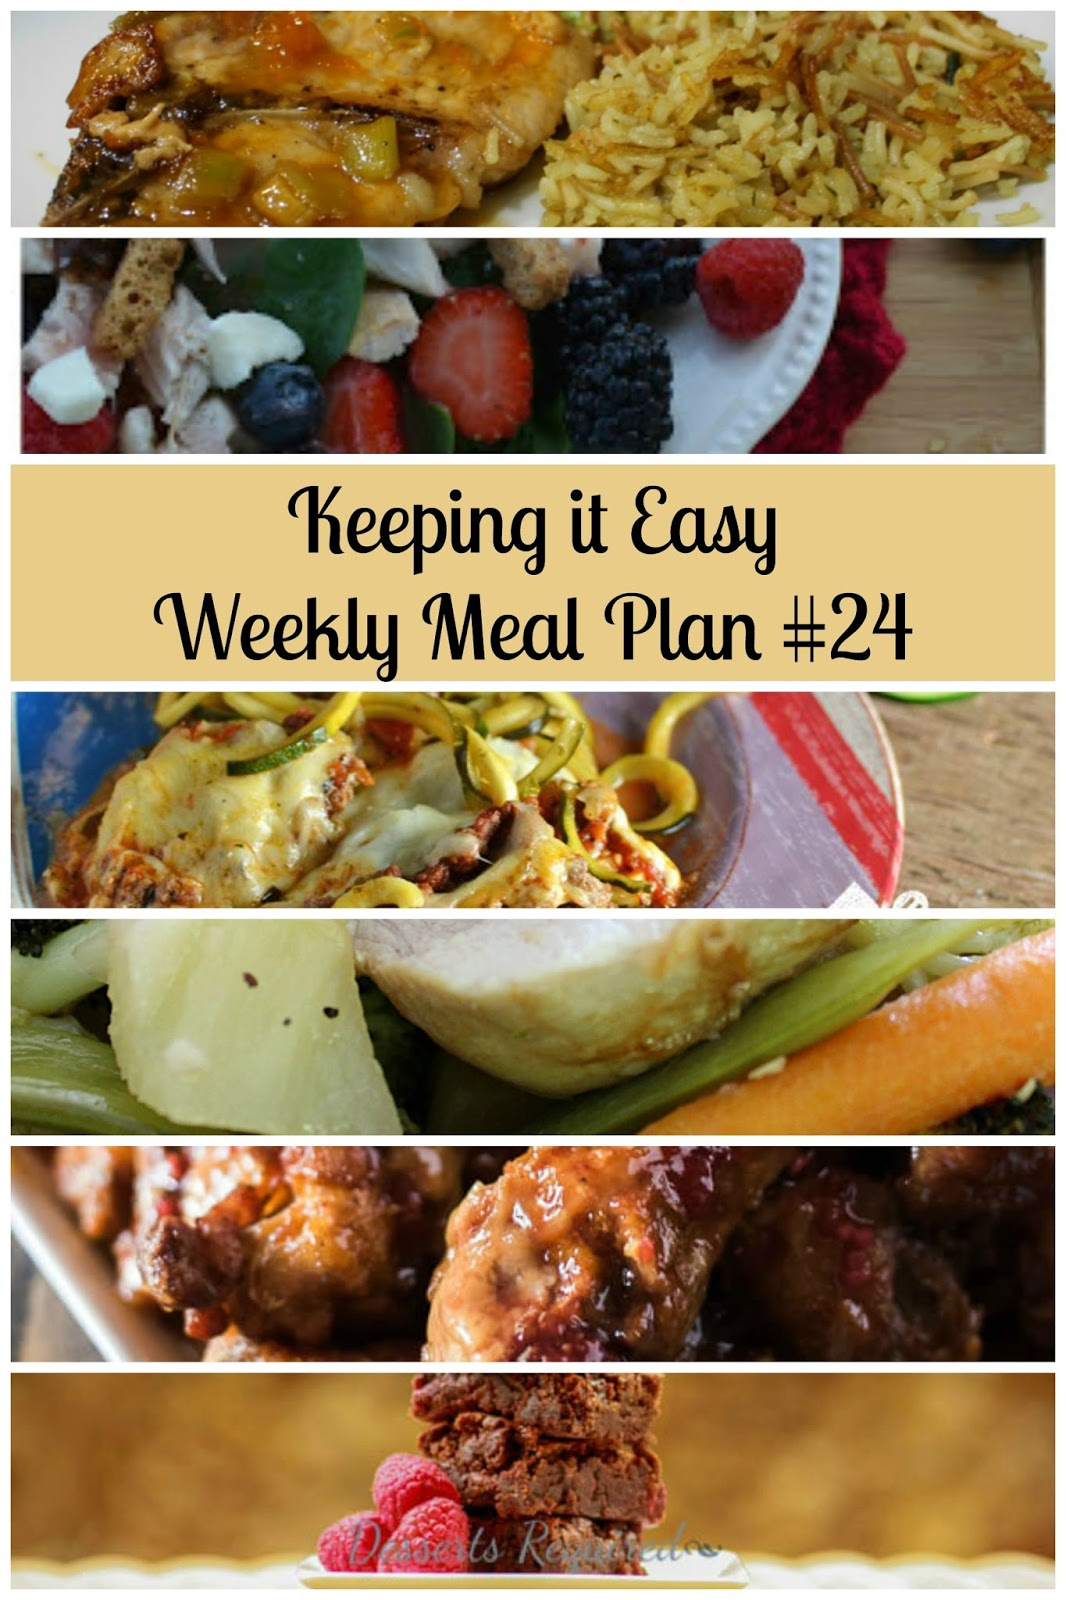 Easy Weekly Meal Plan #24 from My Fearless Kitchen. This week's meal plan includes Cascade Scramble, Saucy Pork Chops with Apricot Glaze, Berry Chicken Salad, Zucchini Noodle Bake, Teriyaki Pork and Garlic Roasted Vegetables Sheet Pan Dinner, Spicy PB&J Wings, and Raspberry Marshmallow Brownies.